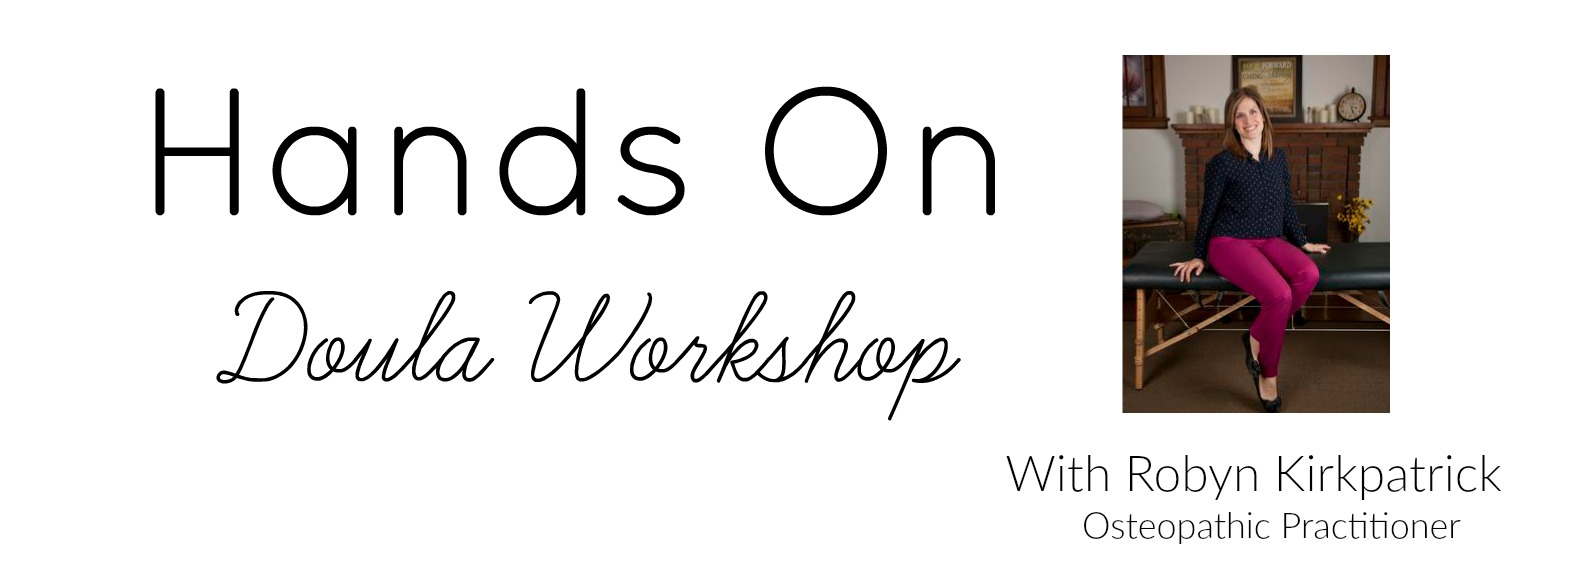 Hands On Doula Workshop1